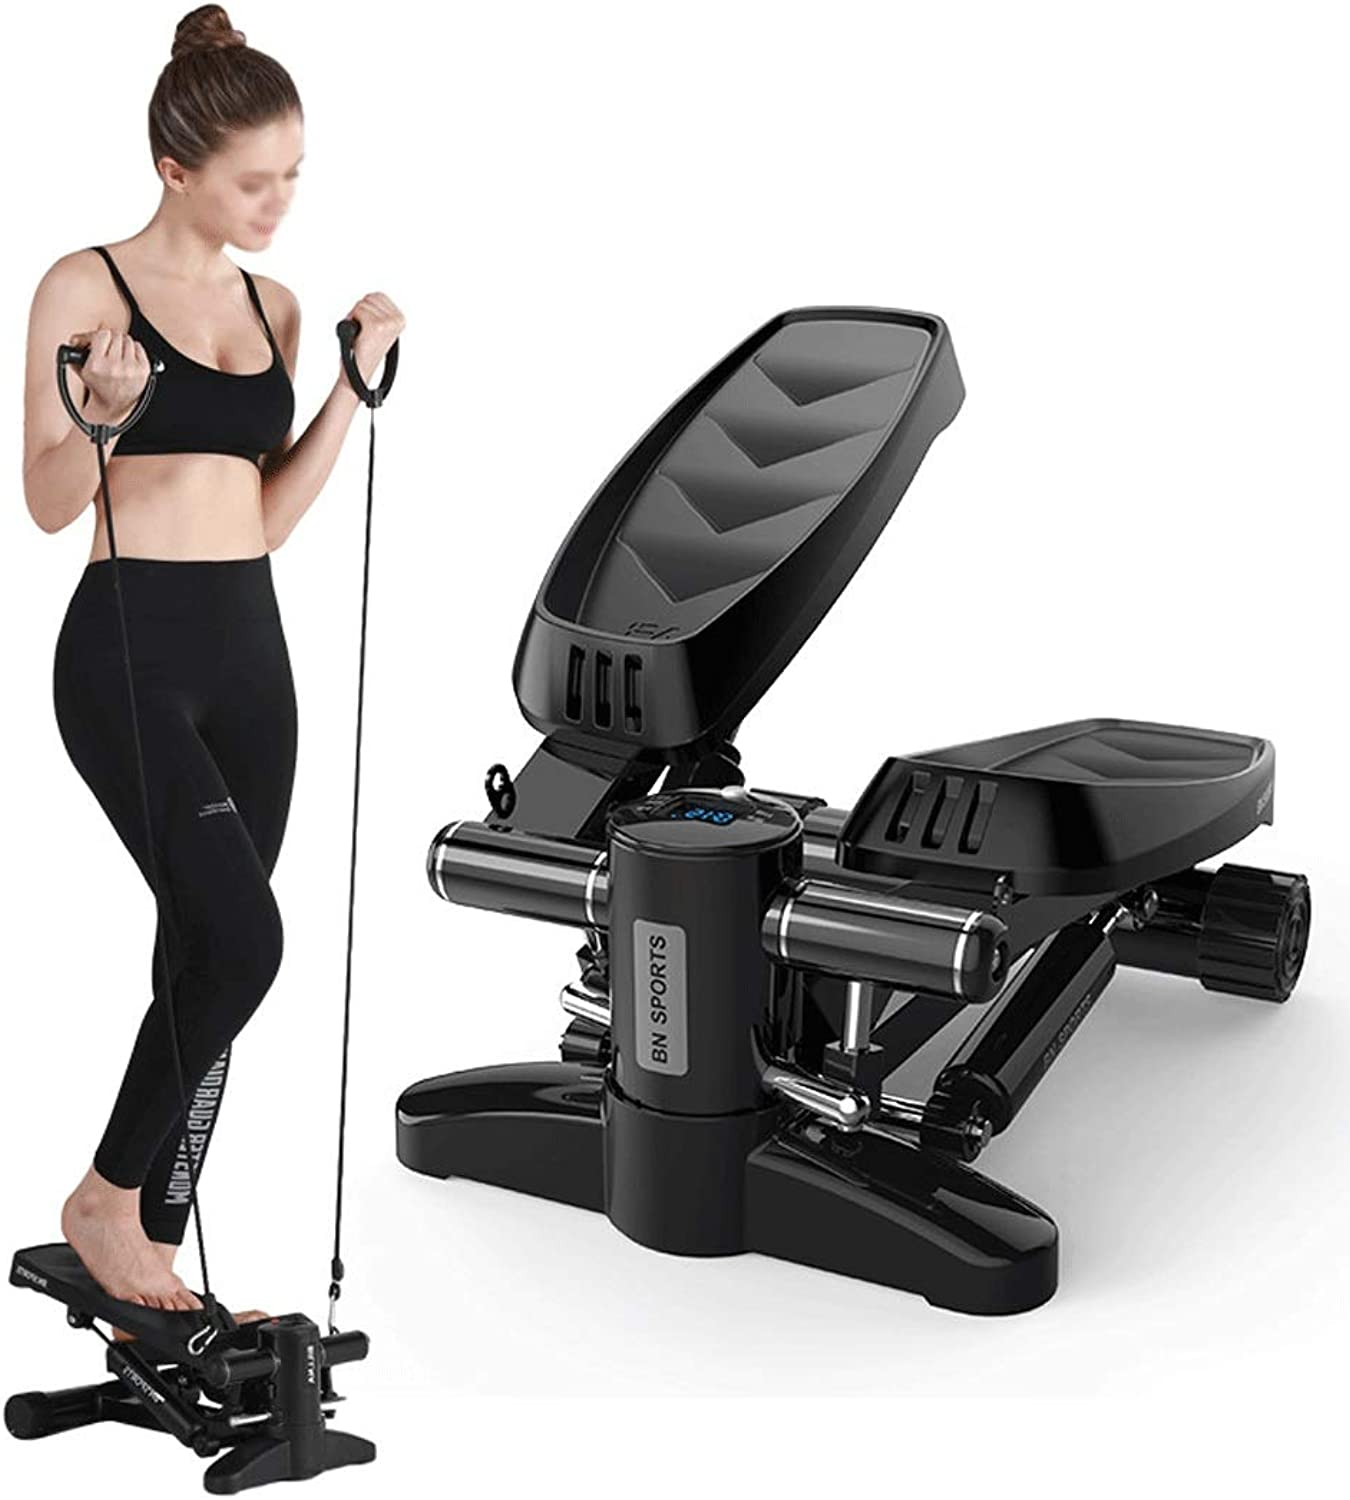 YUNHAO Mini Hydraulic Stepper Home Fitness Equipment Old Multifunction Non-Slip ABS Stepper 43  21  33cm Keep fit and Practical